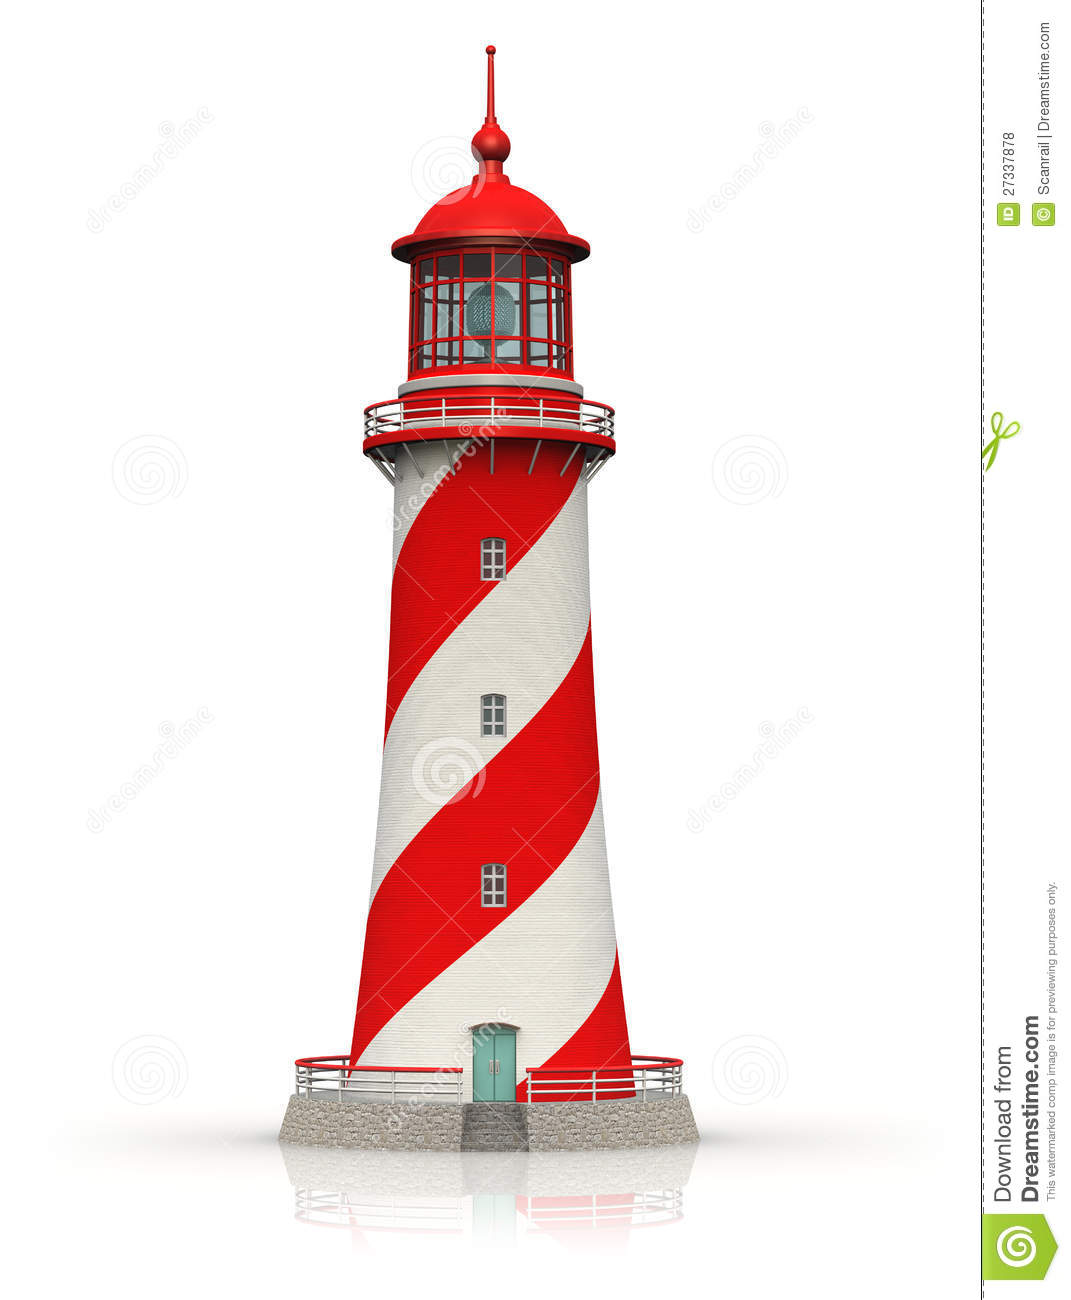 Red Lighthouse On White Royalty Free Stock Photos - Image: 27337878: www.dreamstime.com/royalty-free-stock-photos-red-lighthouse-white...